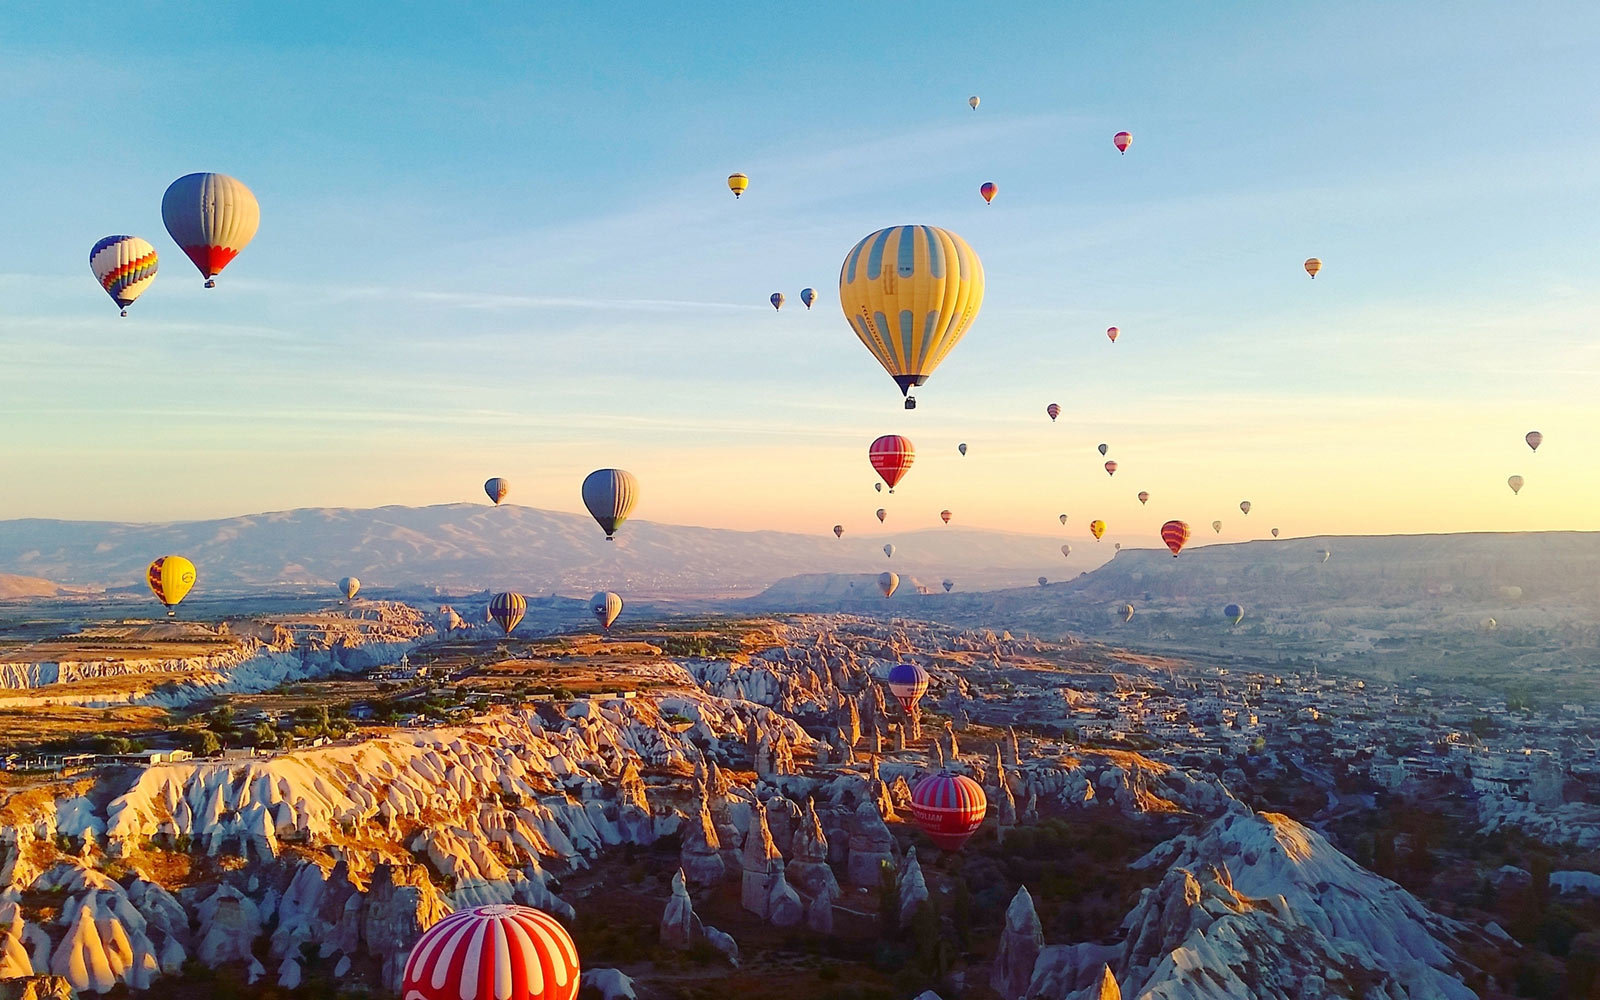 hot-air-balloons-festival-cappadocia-turkey-HOTAIR0605